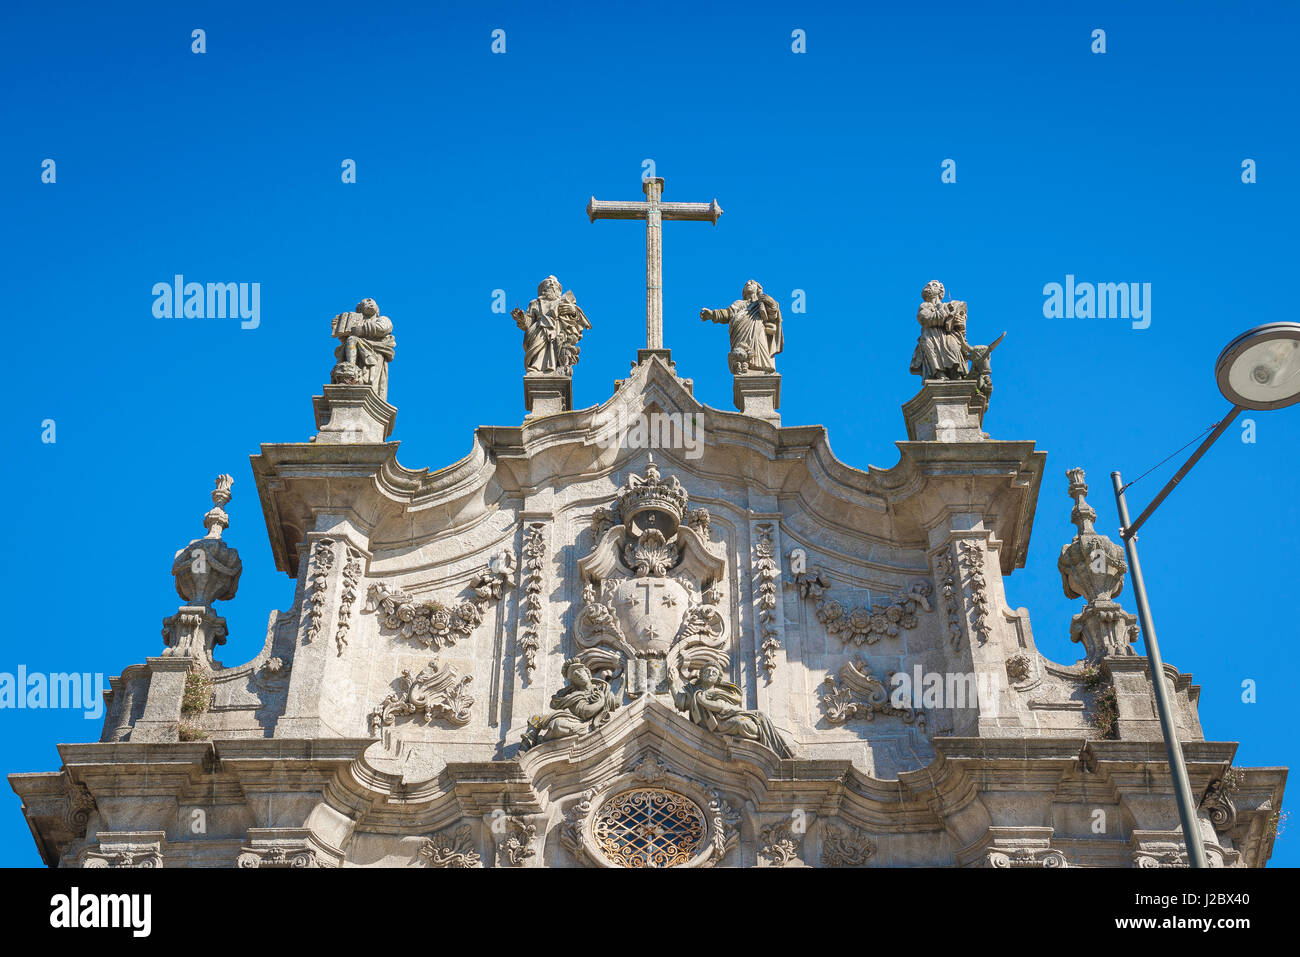 Saints statues church, statues of four saints sited on top of the west end of the Igreja do Carmo, a Baroque church - Stock Image